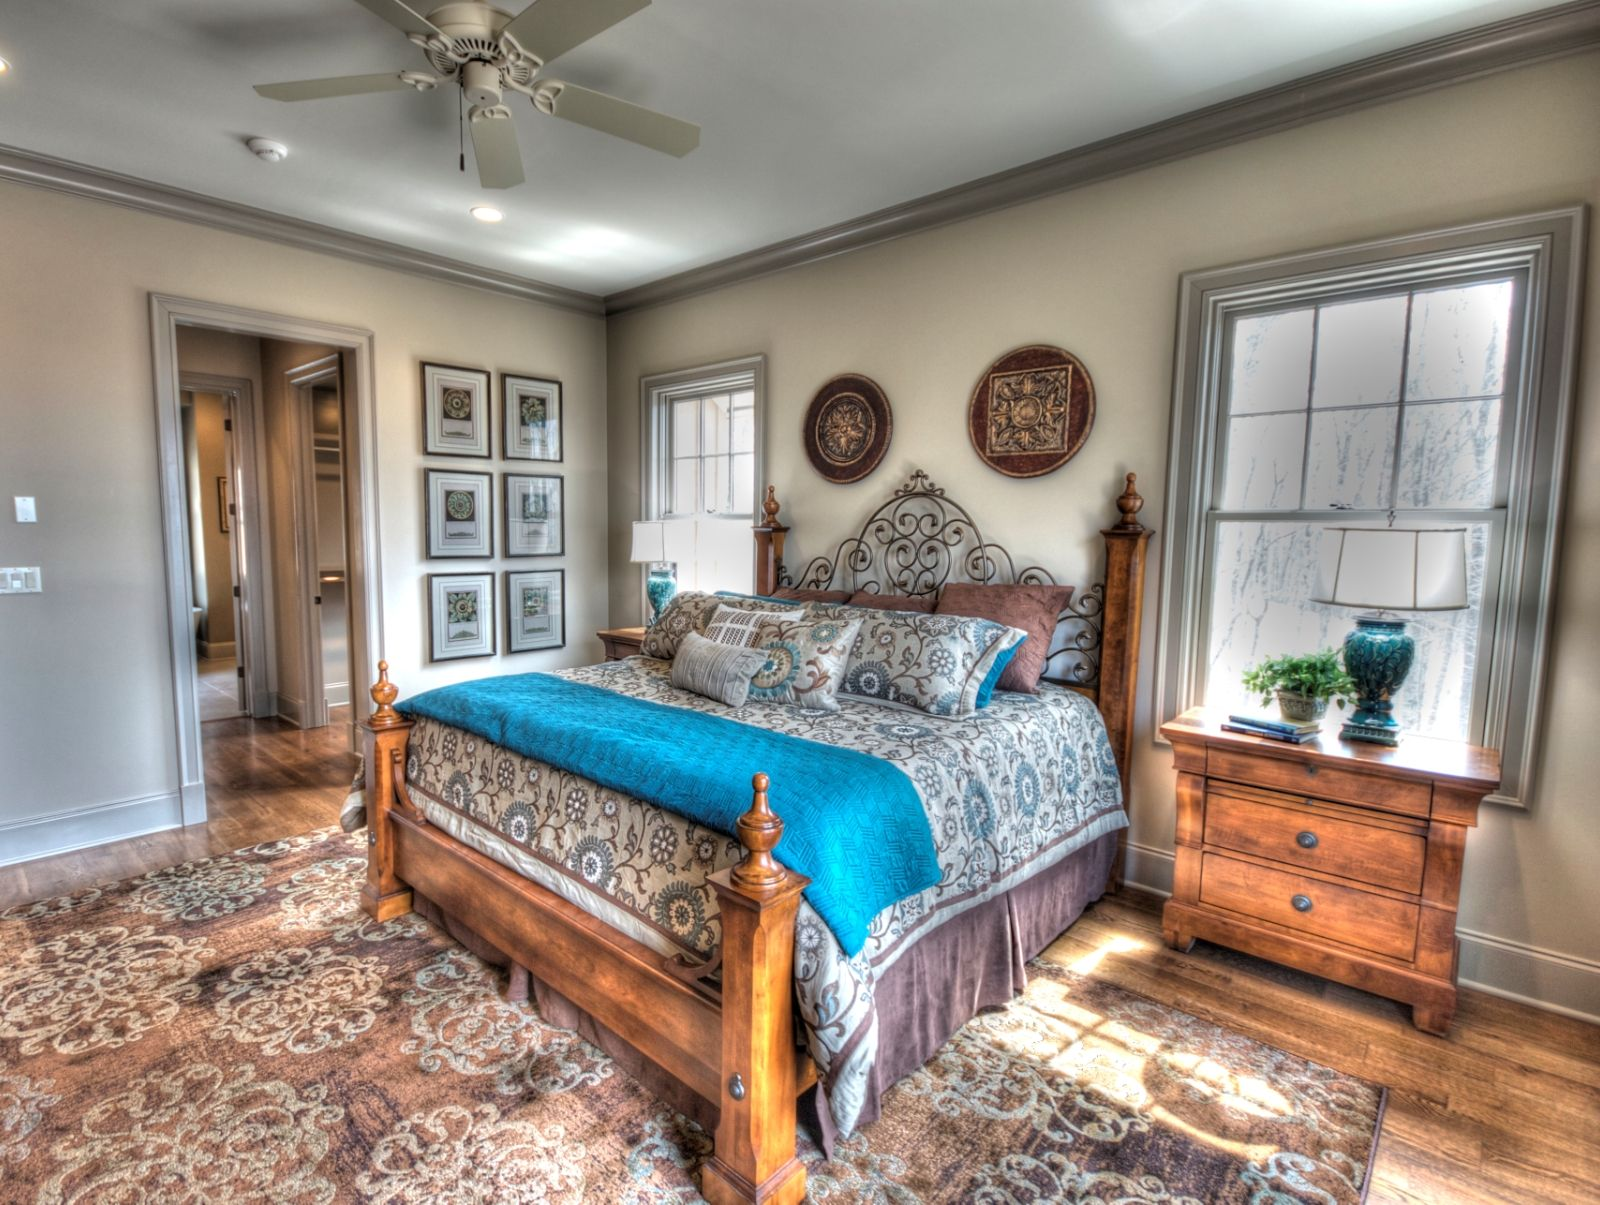 Master Bedroom Idea ~ Rug is awesome